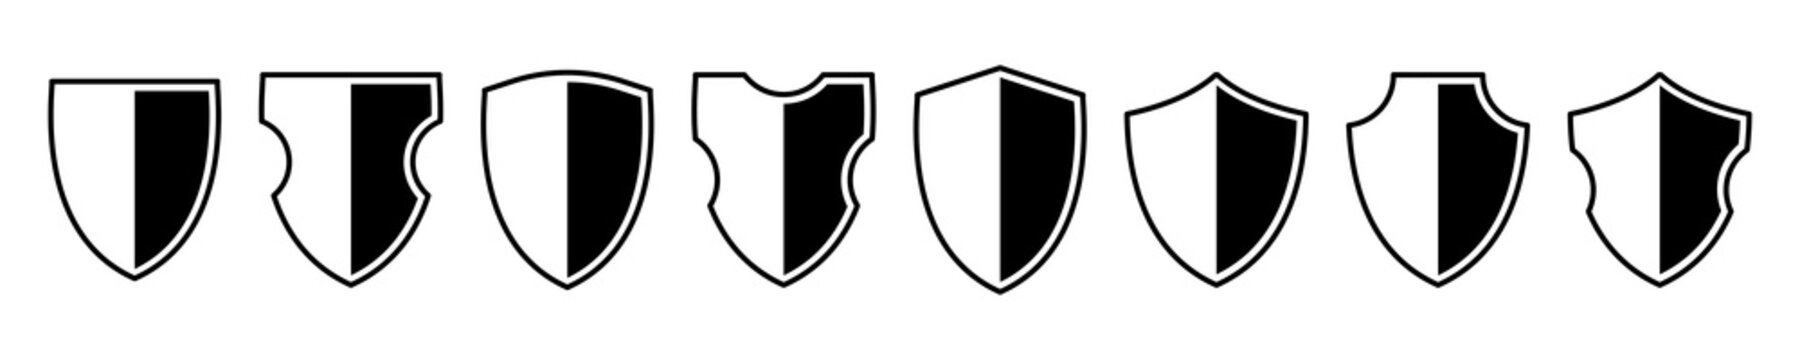 Shields icon set. Different shields shapes. Protect badge. Black security icon. Protection symbol. Security logo.Vector graphic.